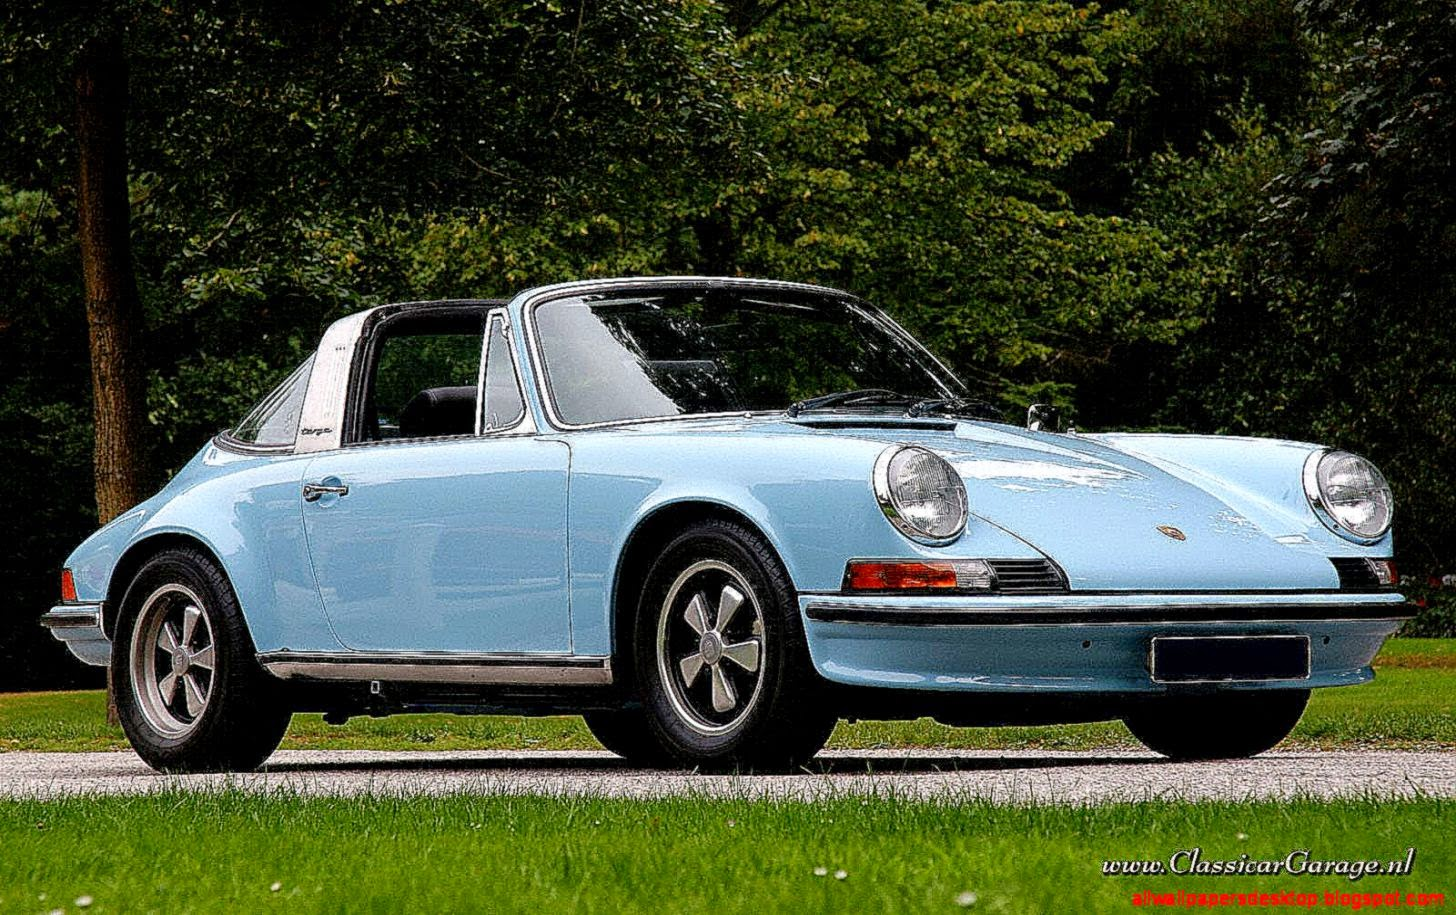 vintage porsche 911 wallpaper widescreen porsche 911 targa wallpaper - Porsche 911 Wallpaper Widescreen